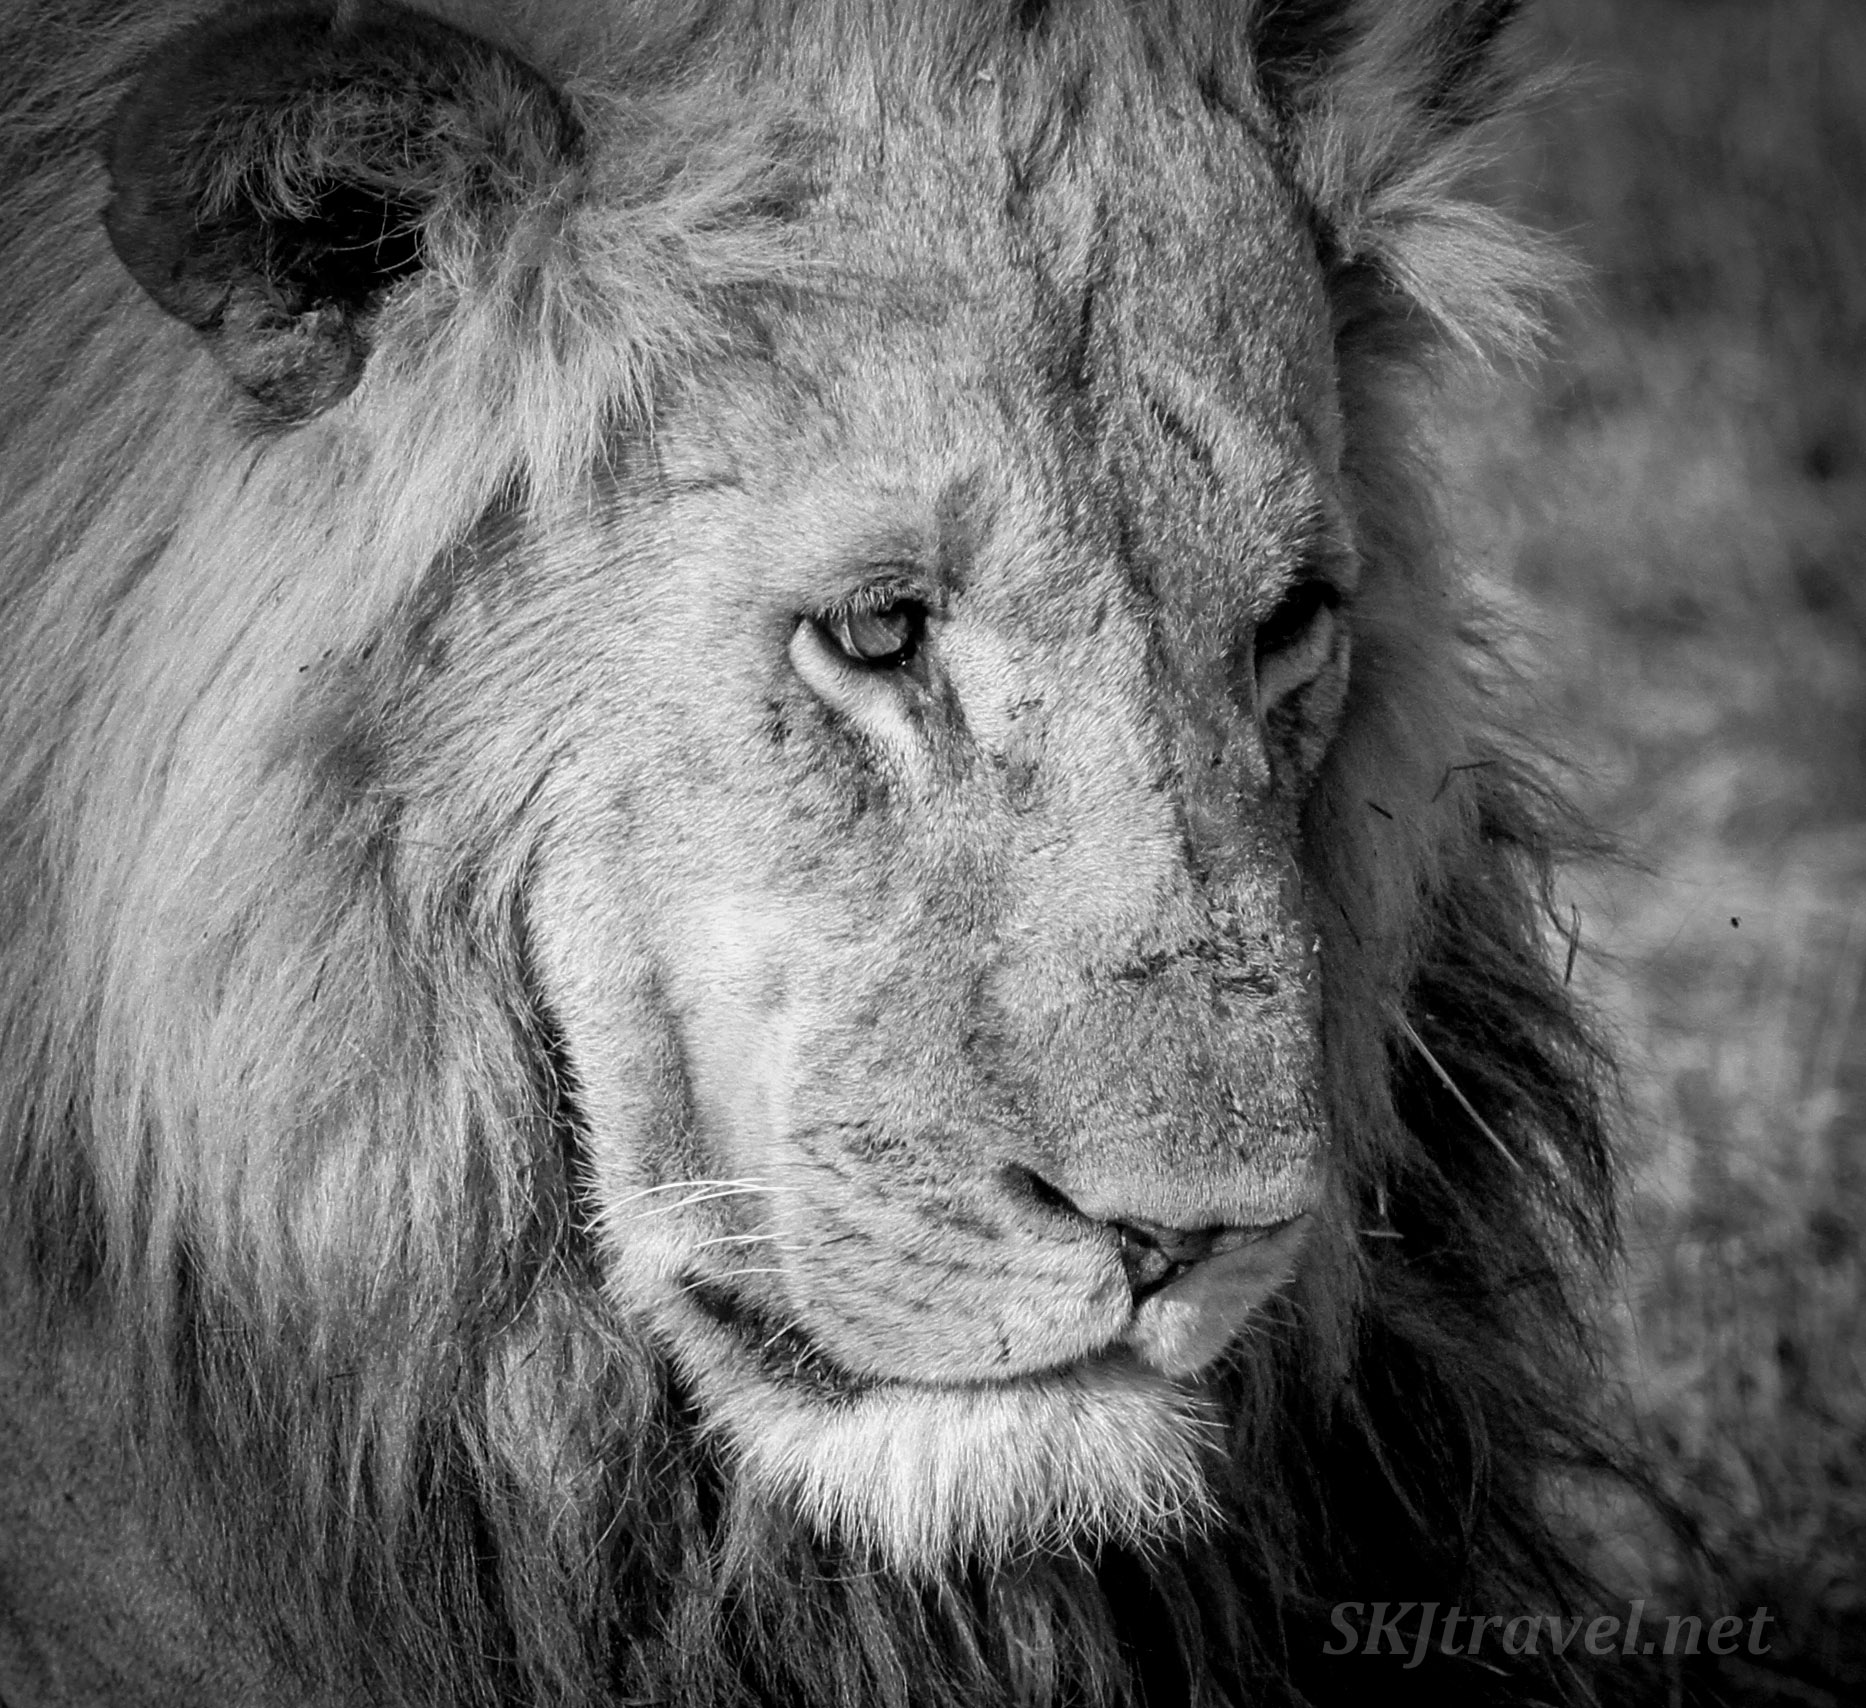 Sad looking adult male lion, black and white photography. Okavango Delta, Botswana.